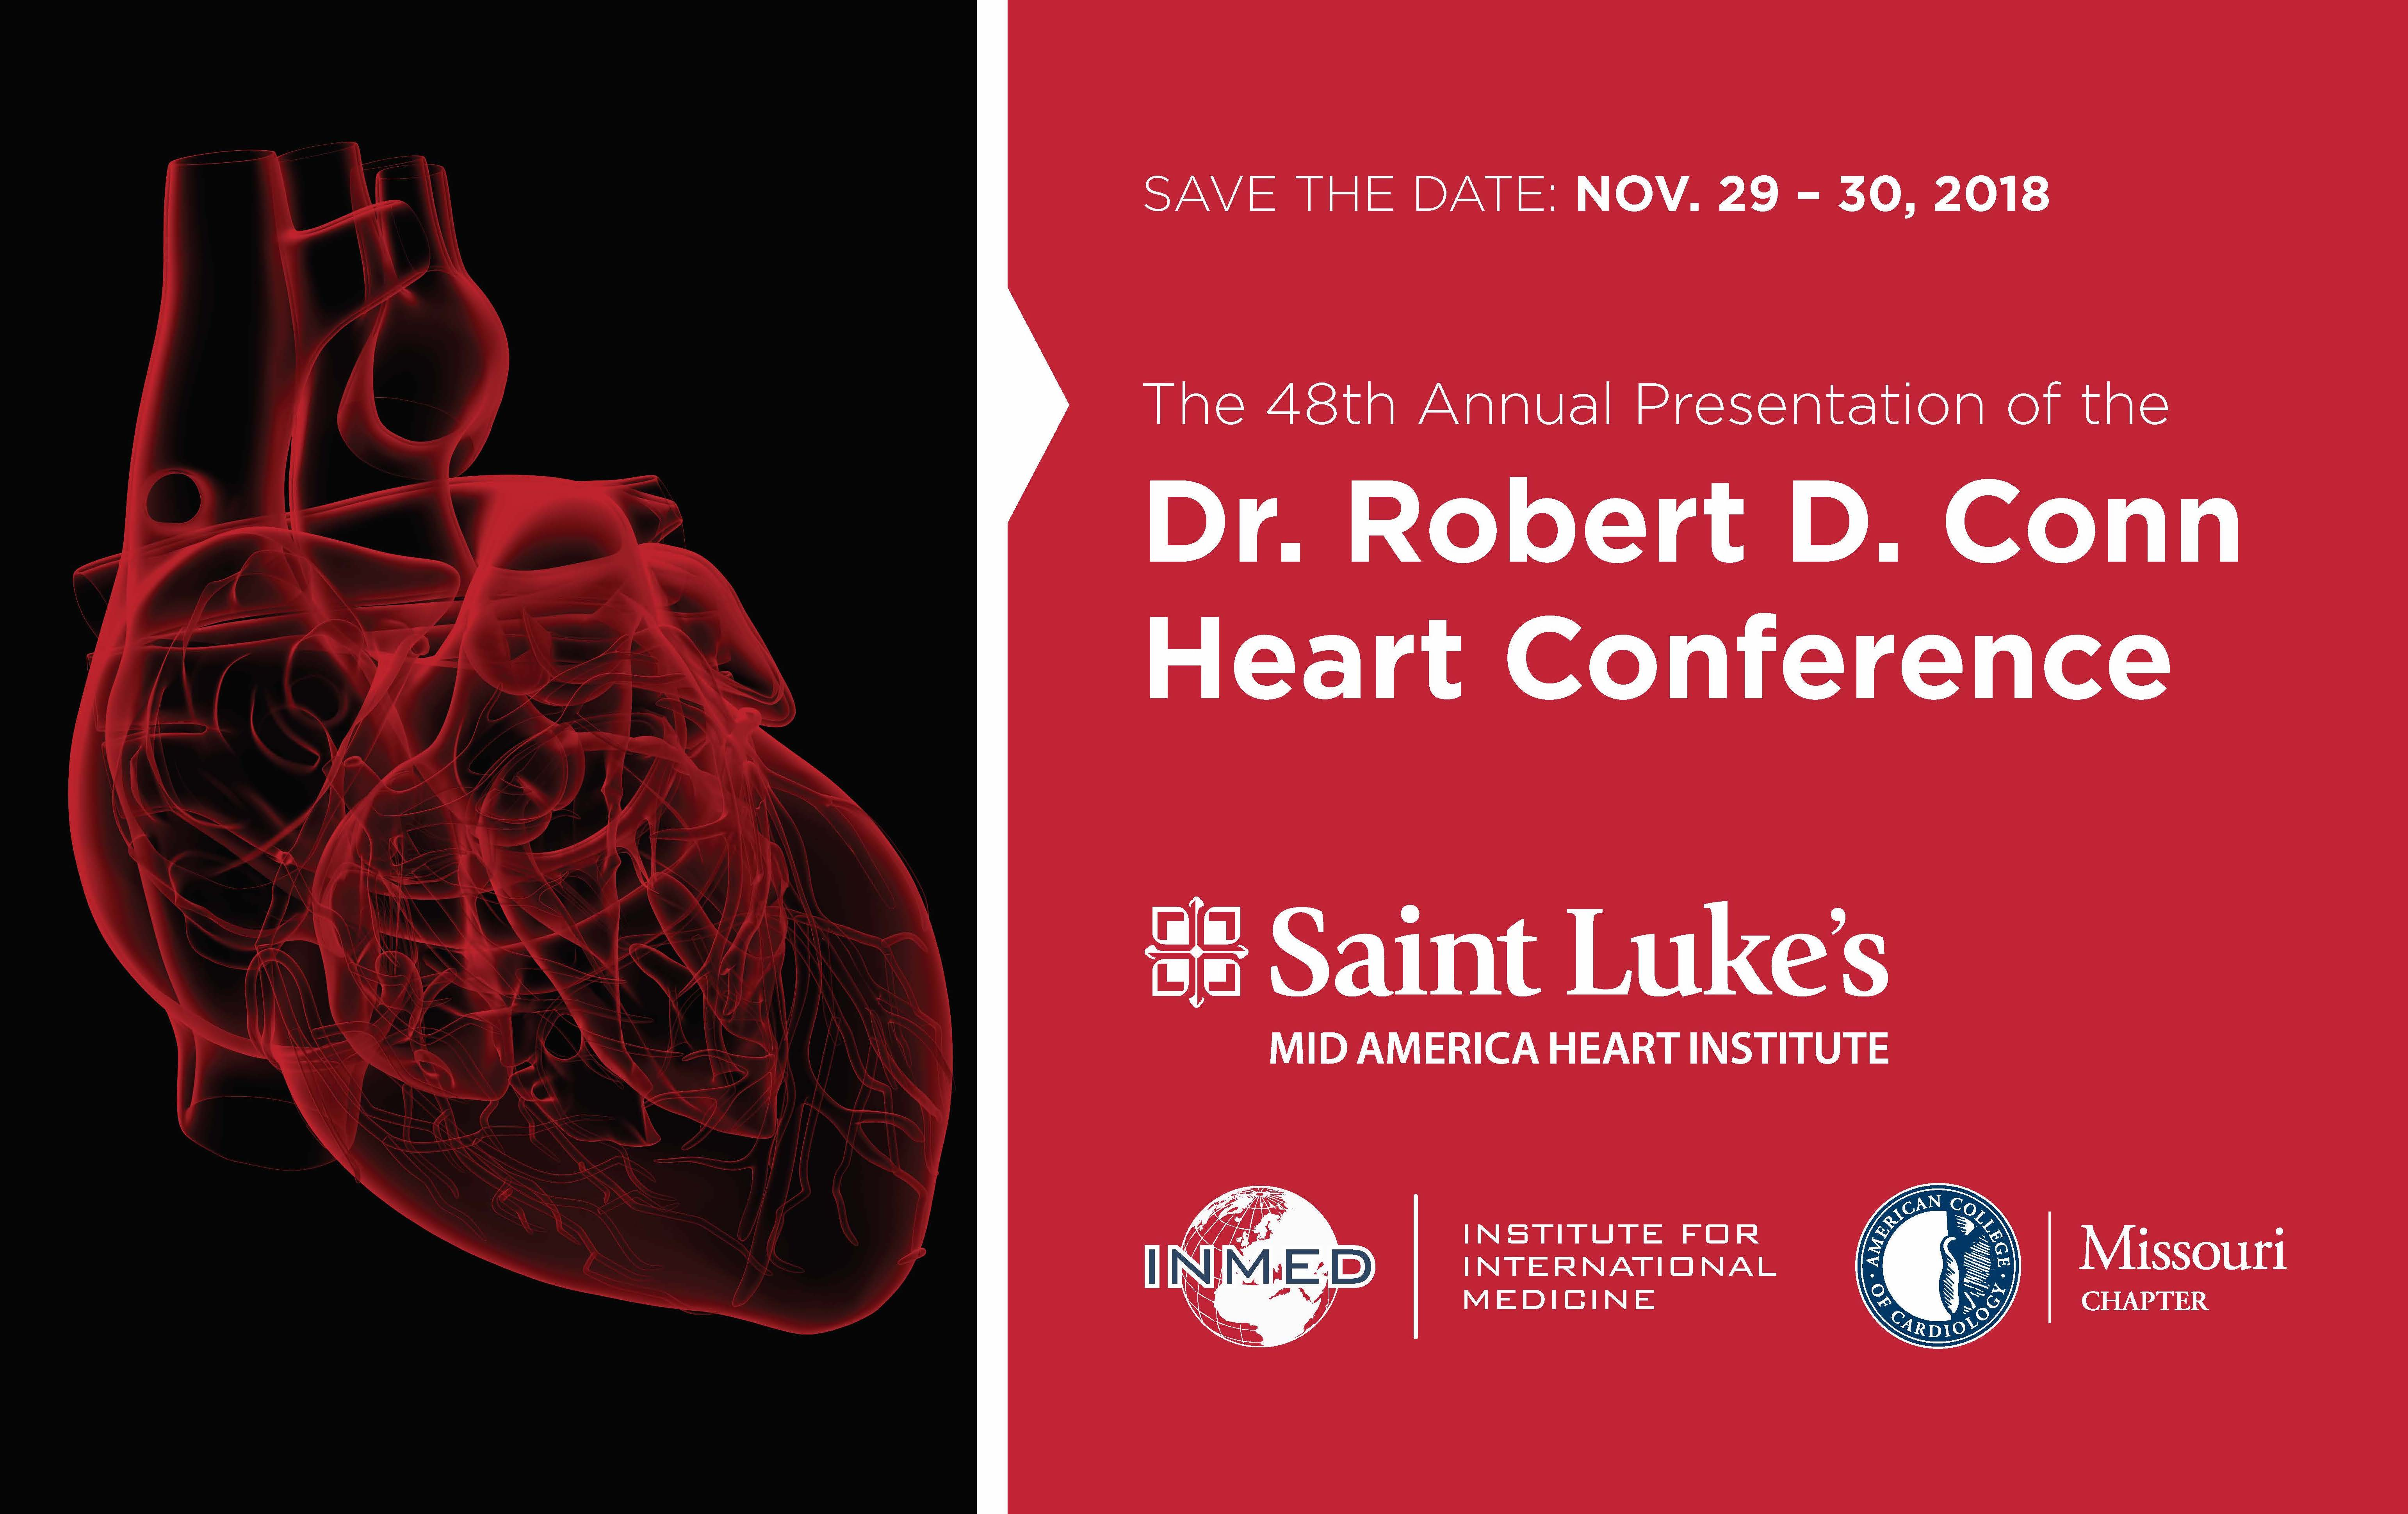 48th Annual Presentation Of The Dr Robert D Conn Heart Conference